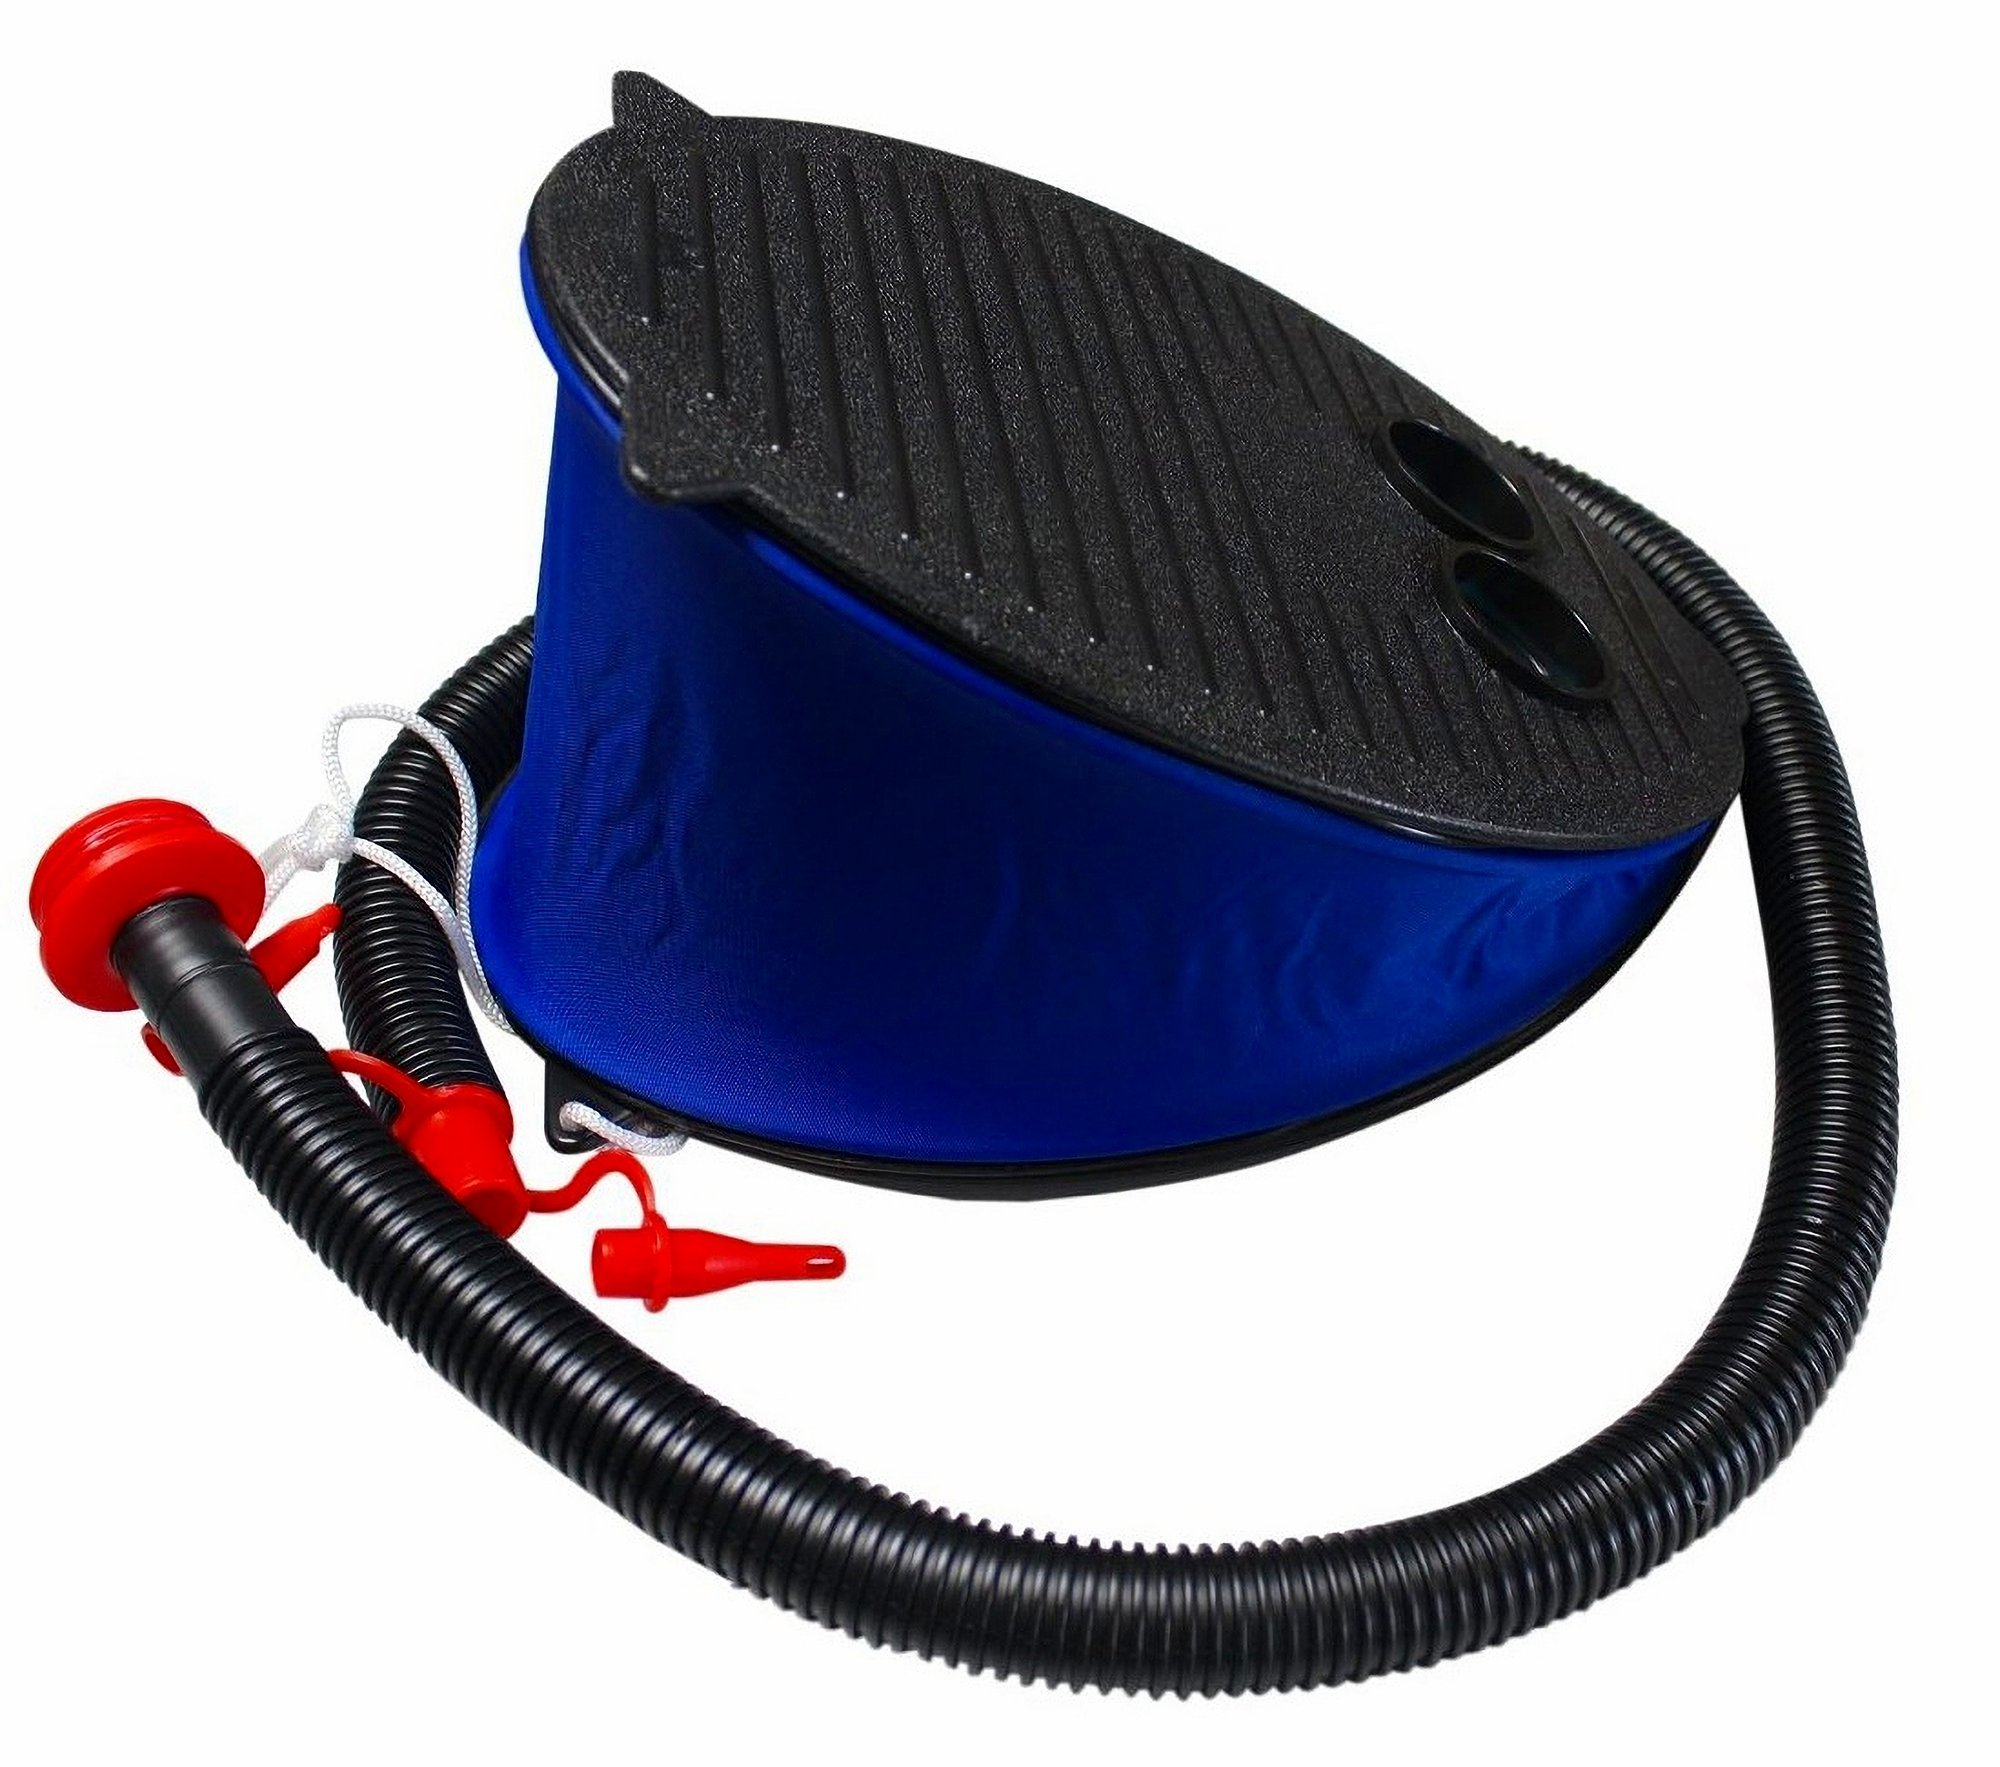 Intex    Outdoor Foot Pump available in Multi - Coloured - Size 28 cm 7